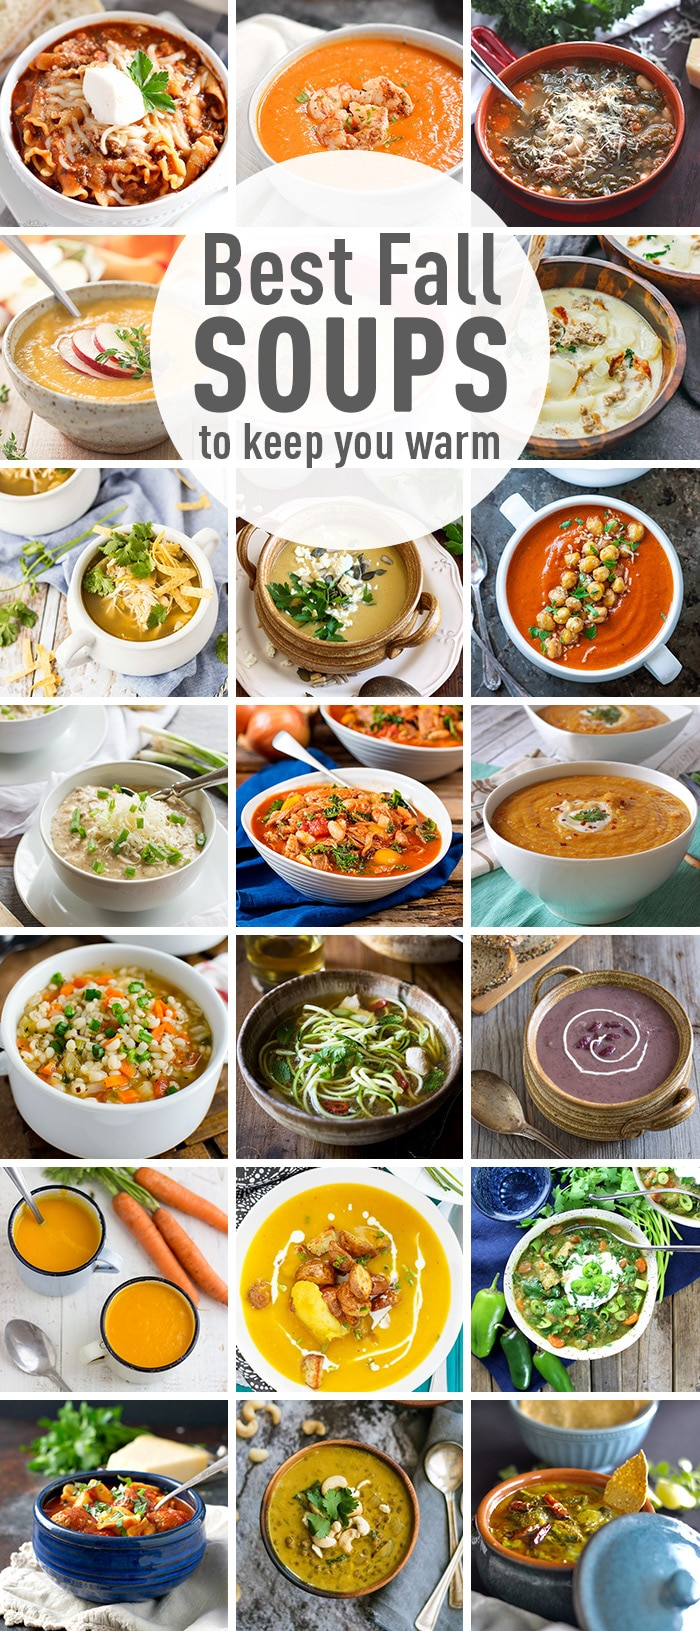 Nothing is better than a warm bowl of soup on a cold day. Check out the best fall soups that will keep you warm this rainy season. Collection of easy homemade soup recipes. #souprecipes #bestsoups